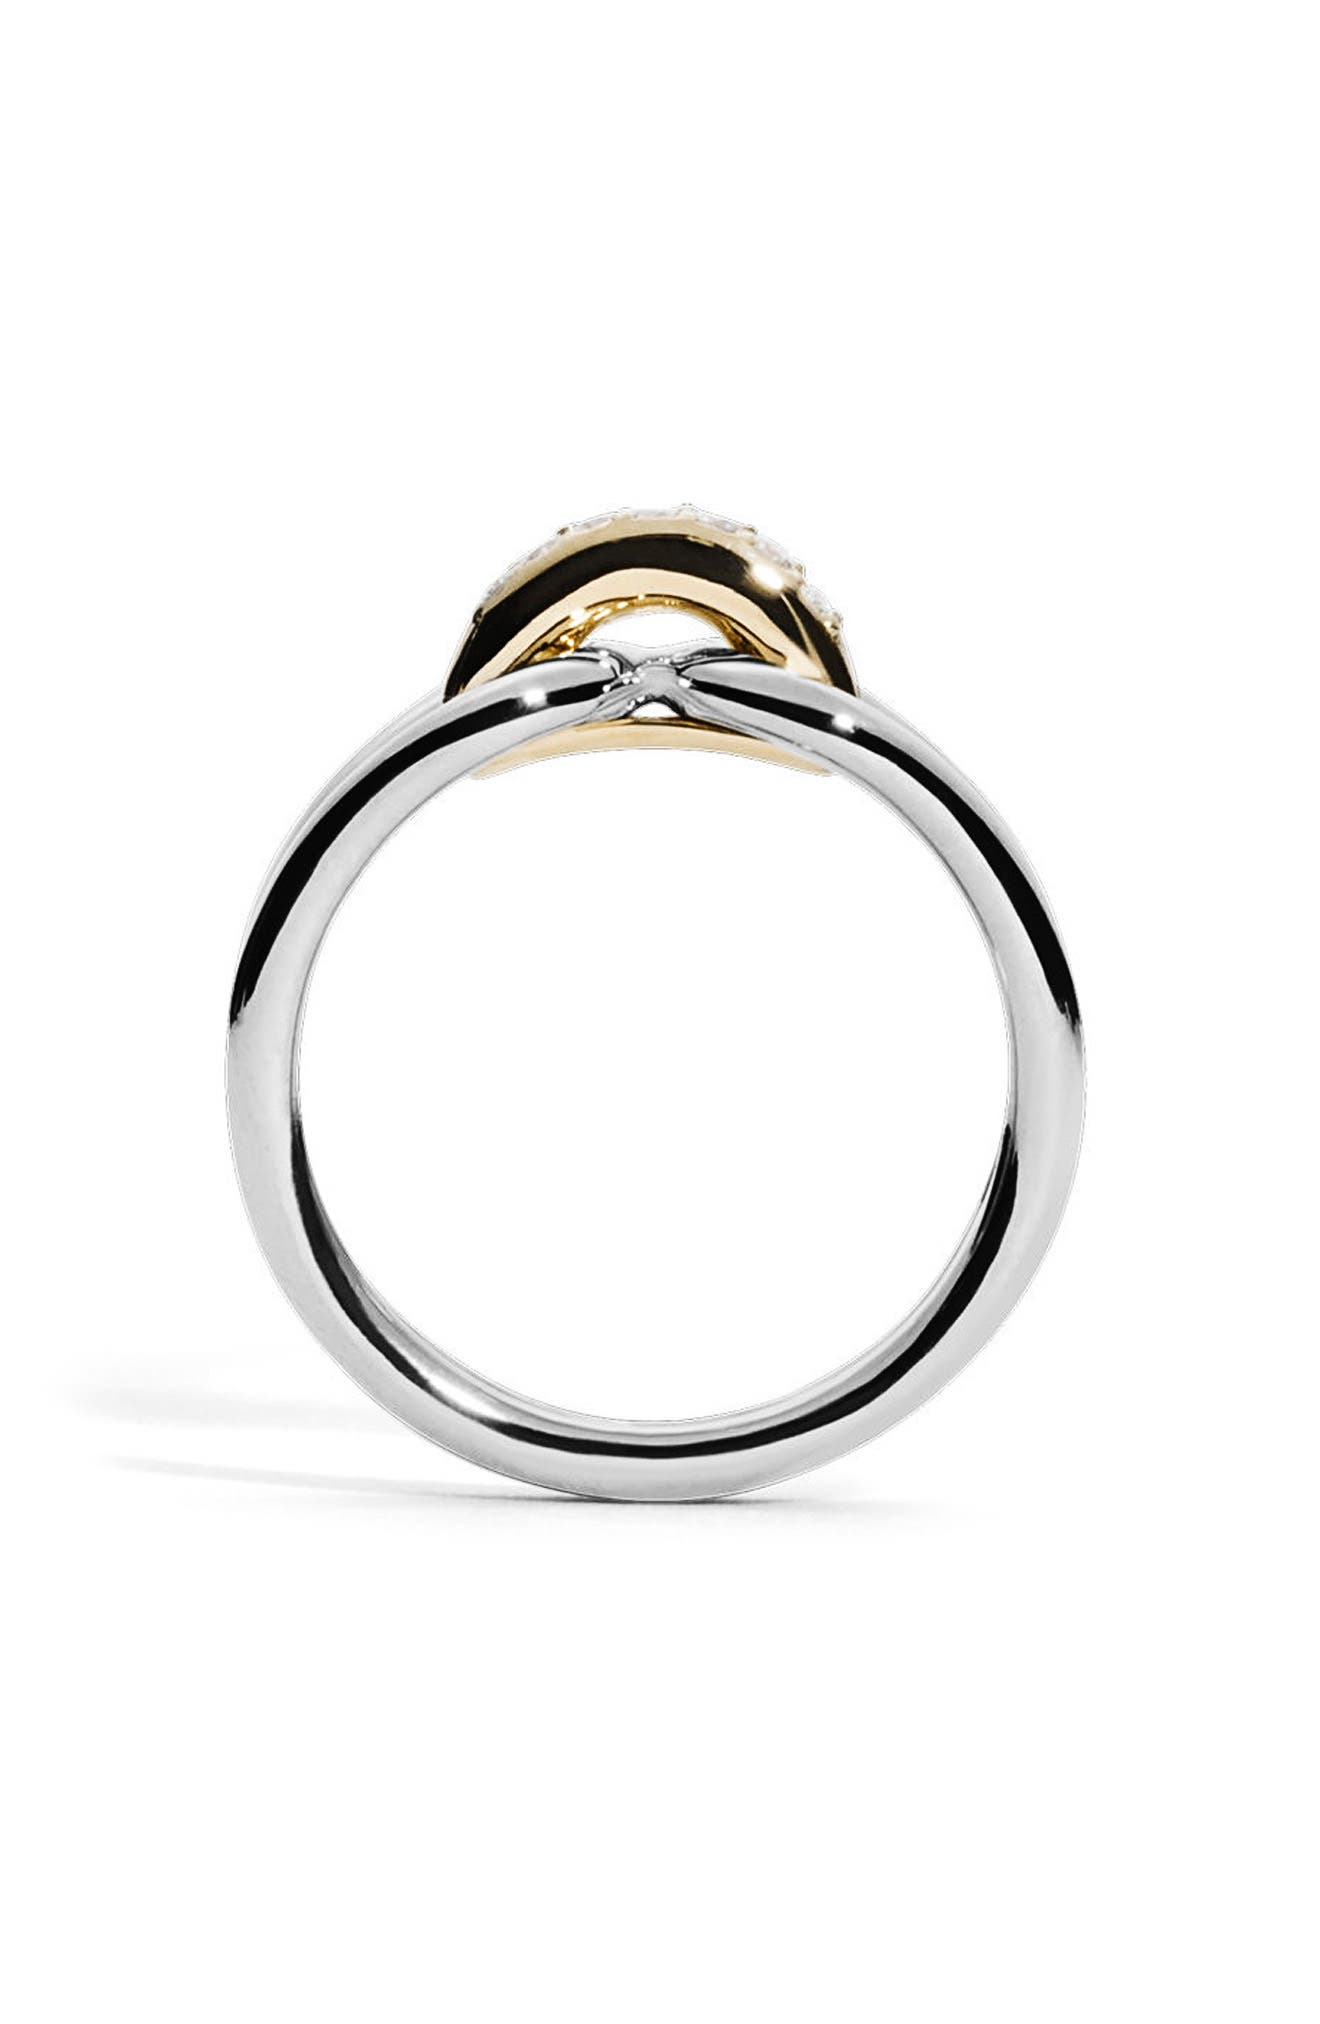 Alternate Image 2  - Shinola Lug Ring